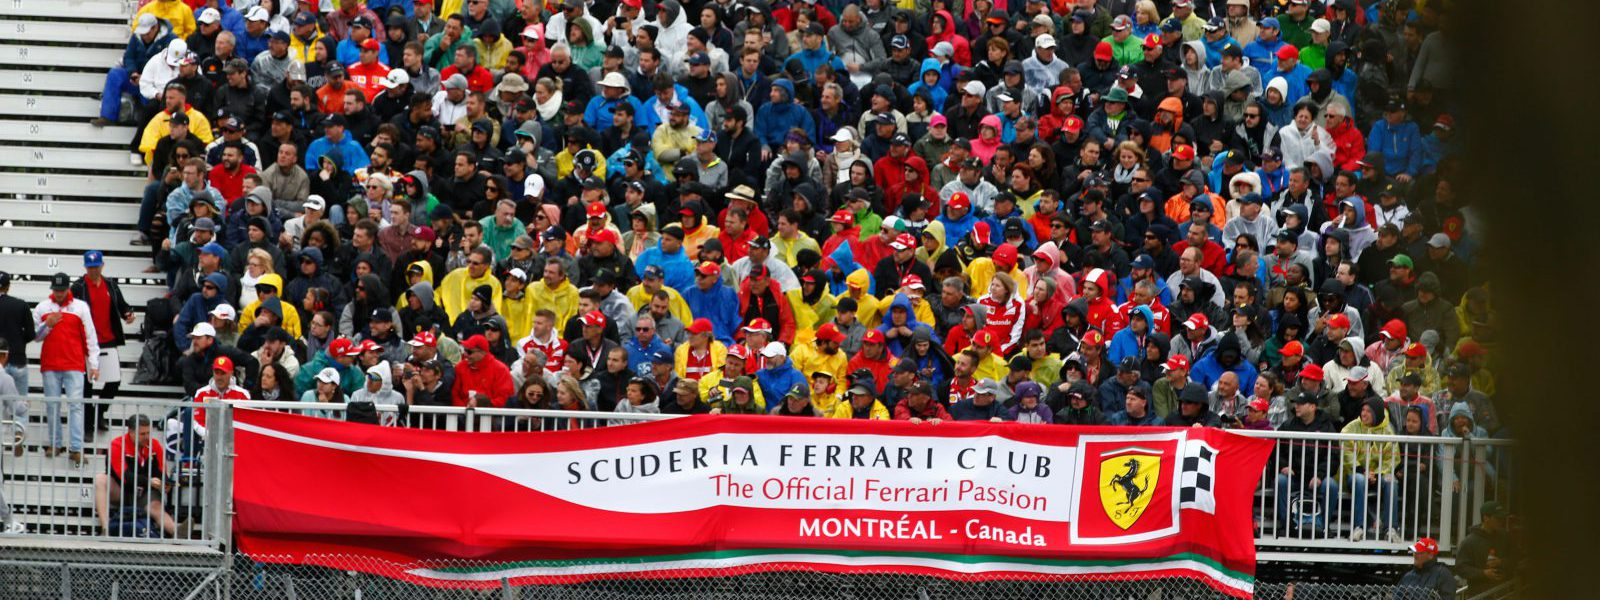 Motorsports: FIA Formula One World Championship 2016, Grand Prix of Canada, fans Scuderia Ferrari *** Local Caption *** +++ www.hoch-zwei.net +++ copyright: HOCH ZWEI +++